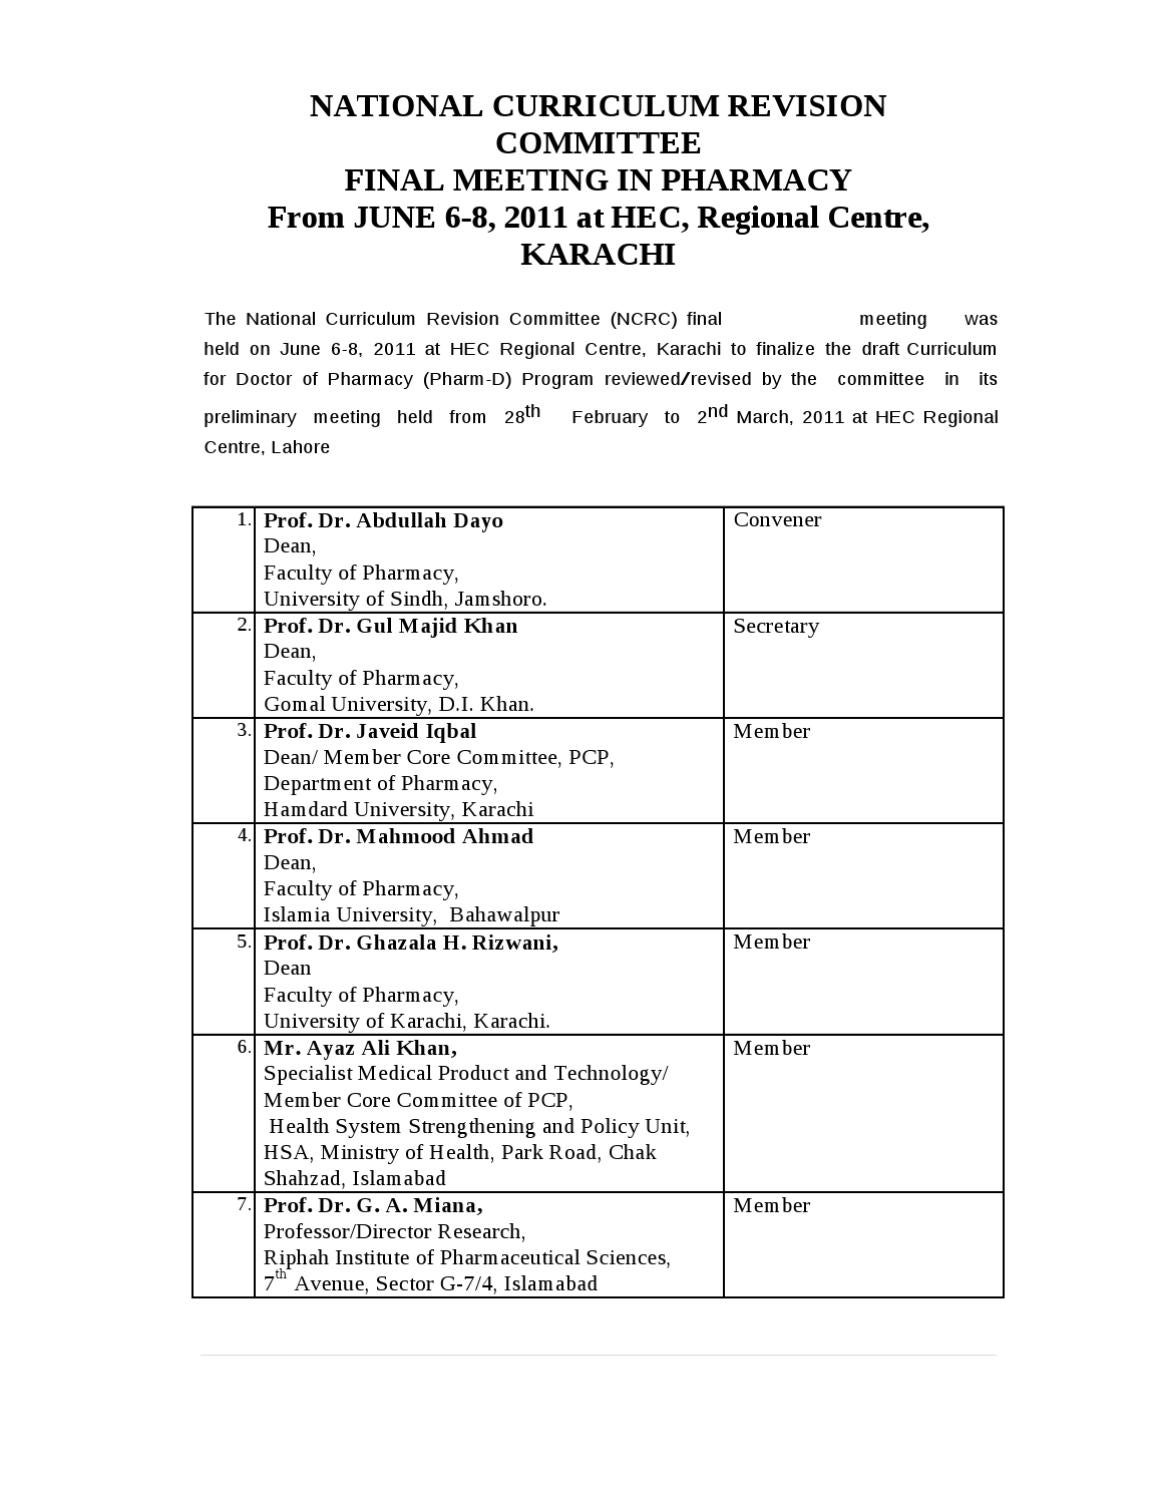 Pharm d revised curriculum by hec 2012 by khawar khalid issuu fandeluxe Choice Image